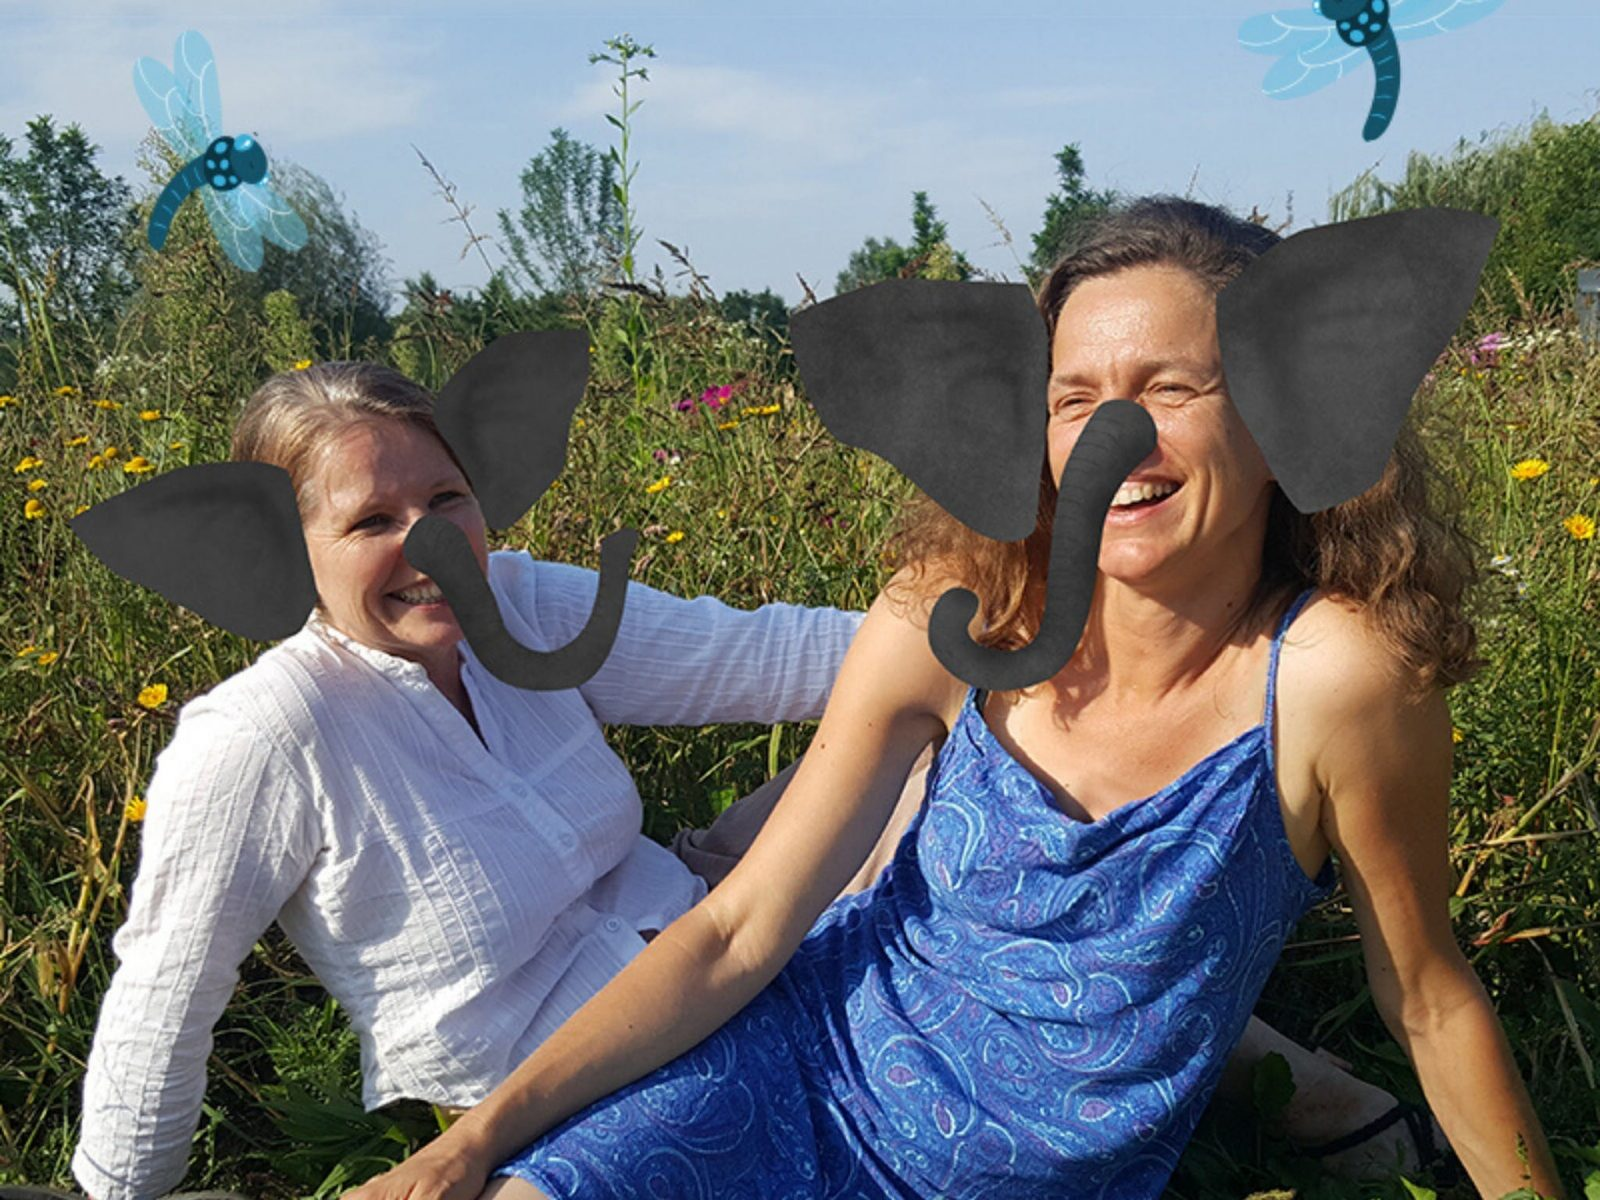 Two women sit in a field, with elephant ears and trunks on their faces.